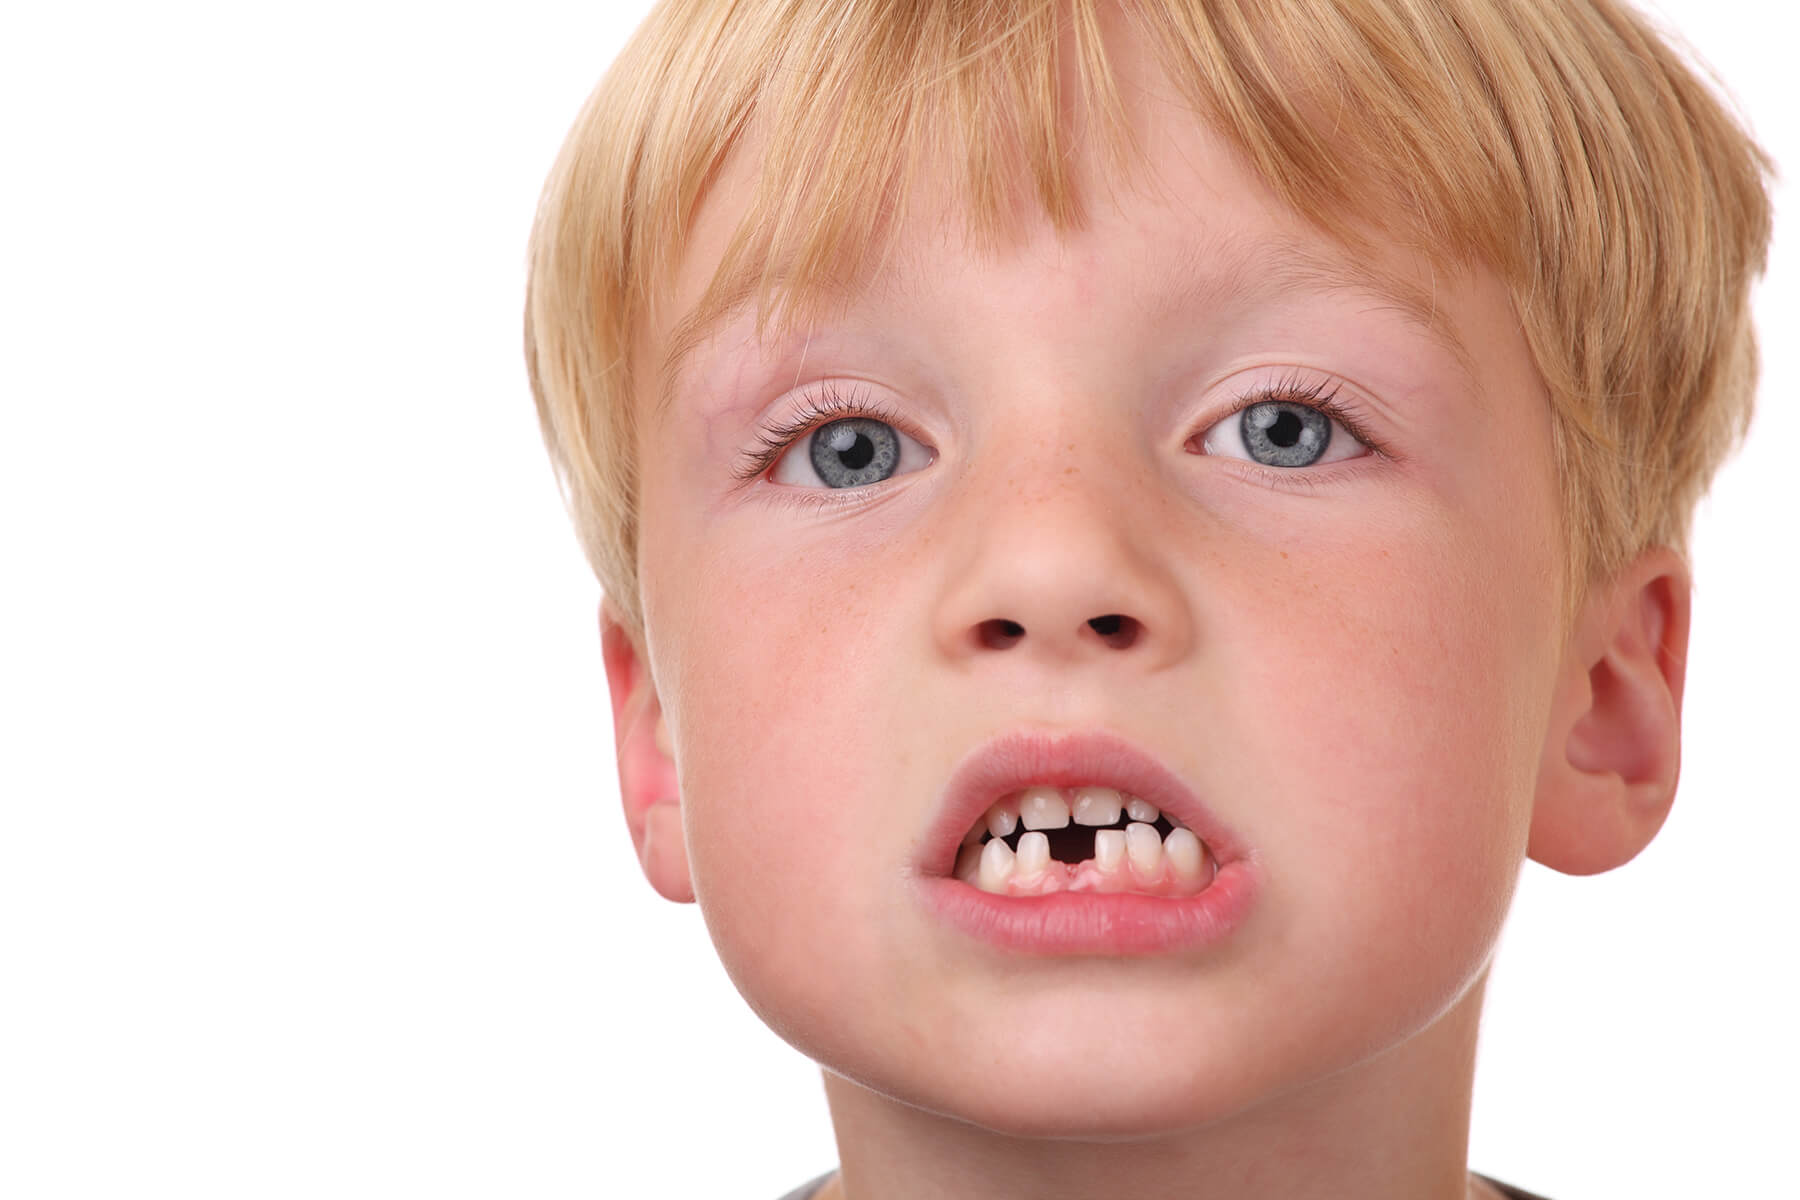 Little boy looking sad with missing teeth